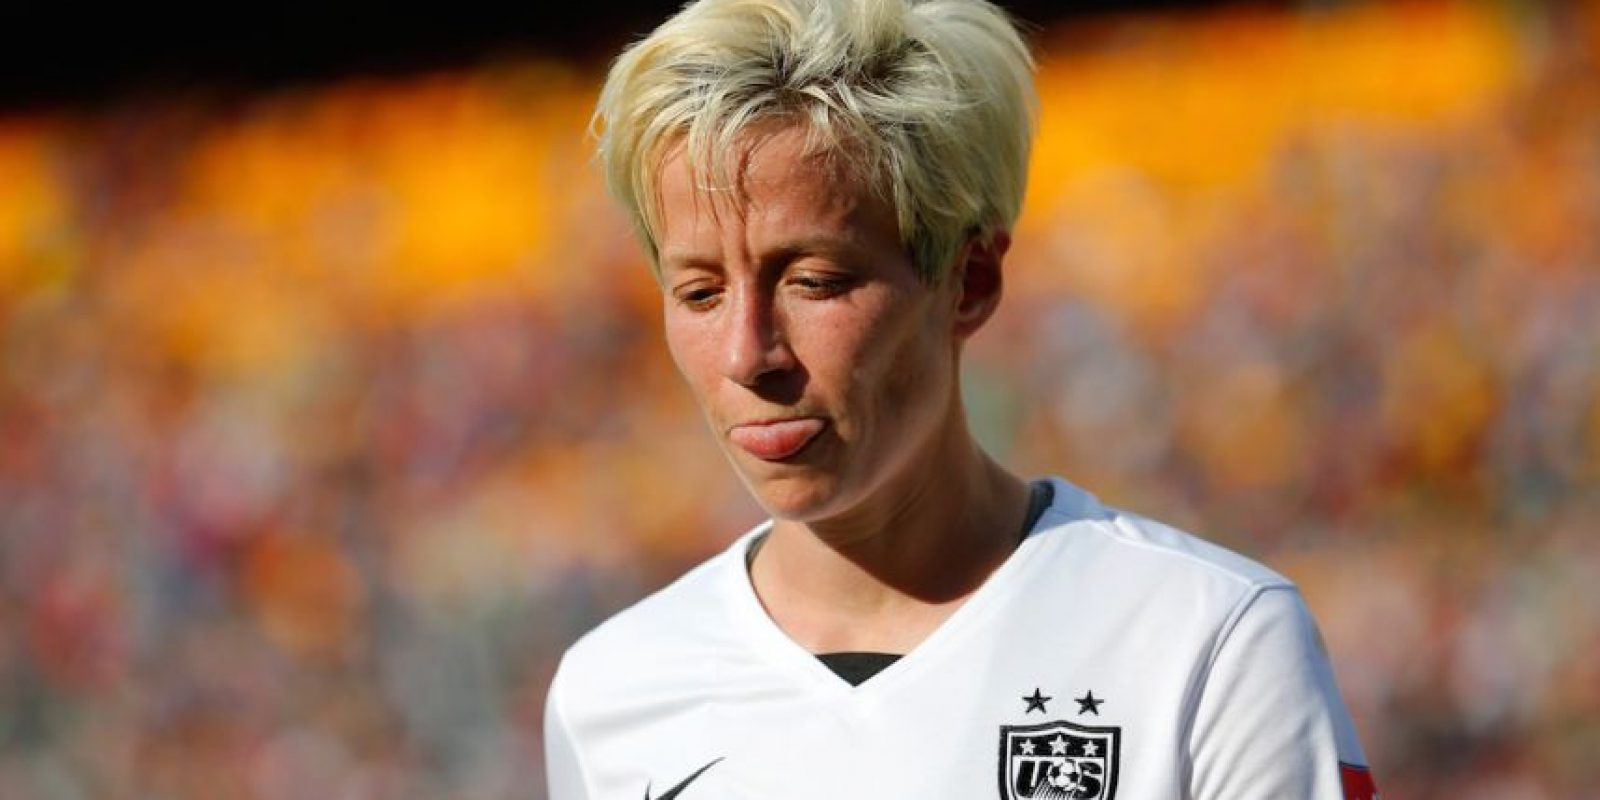 13. Megan Rapinoe (Fútbol) Foto: Getty Images